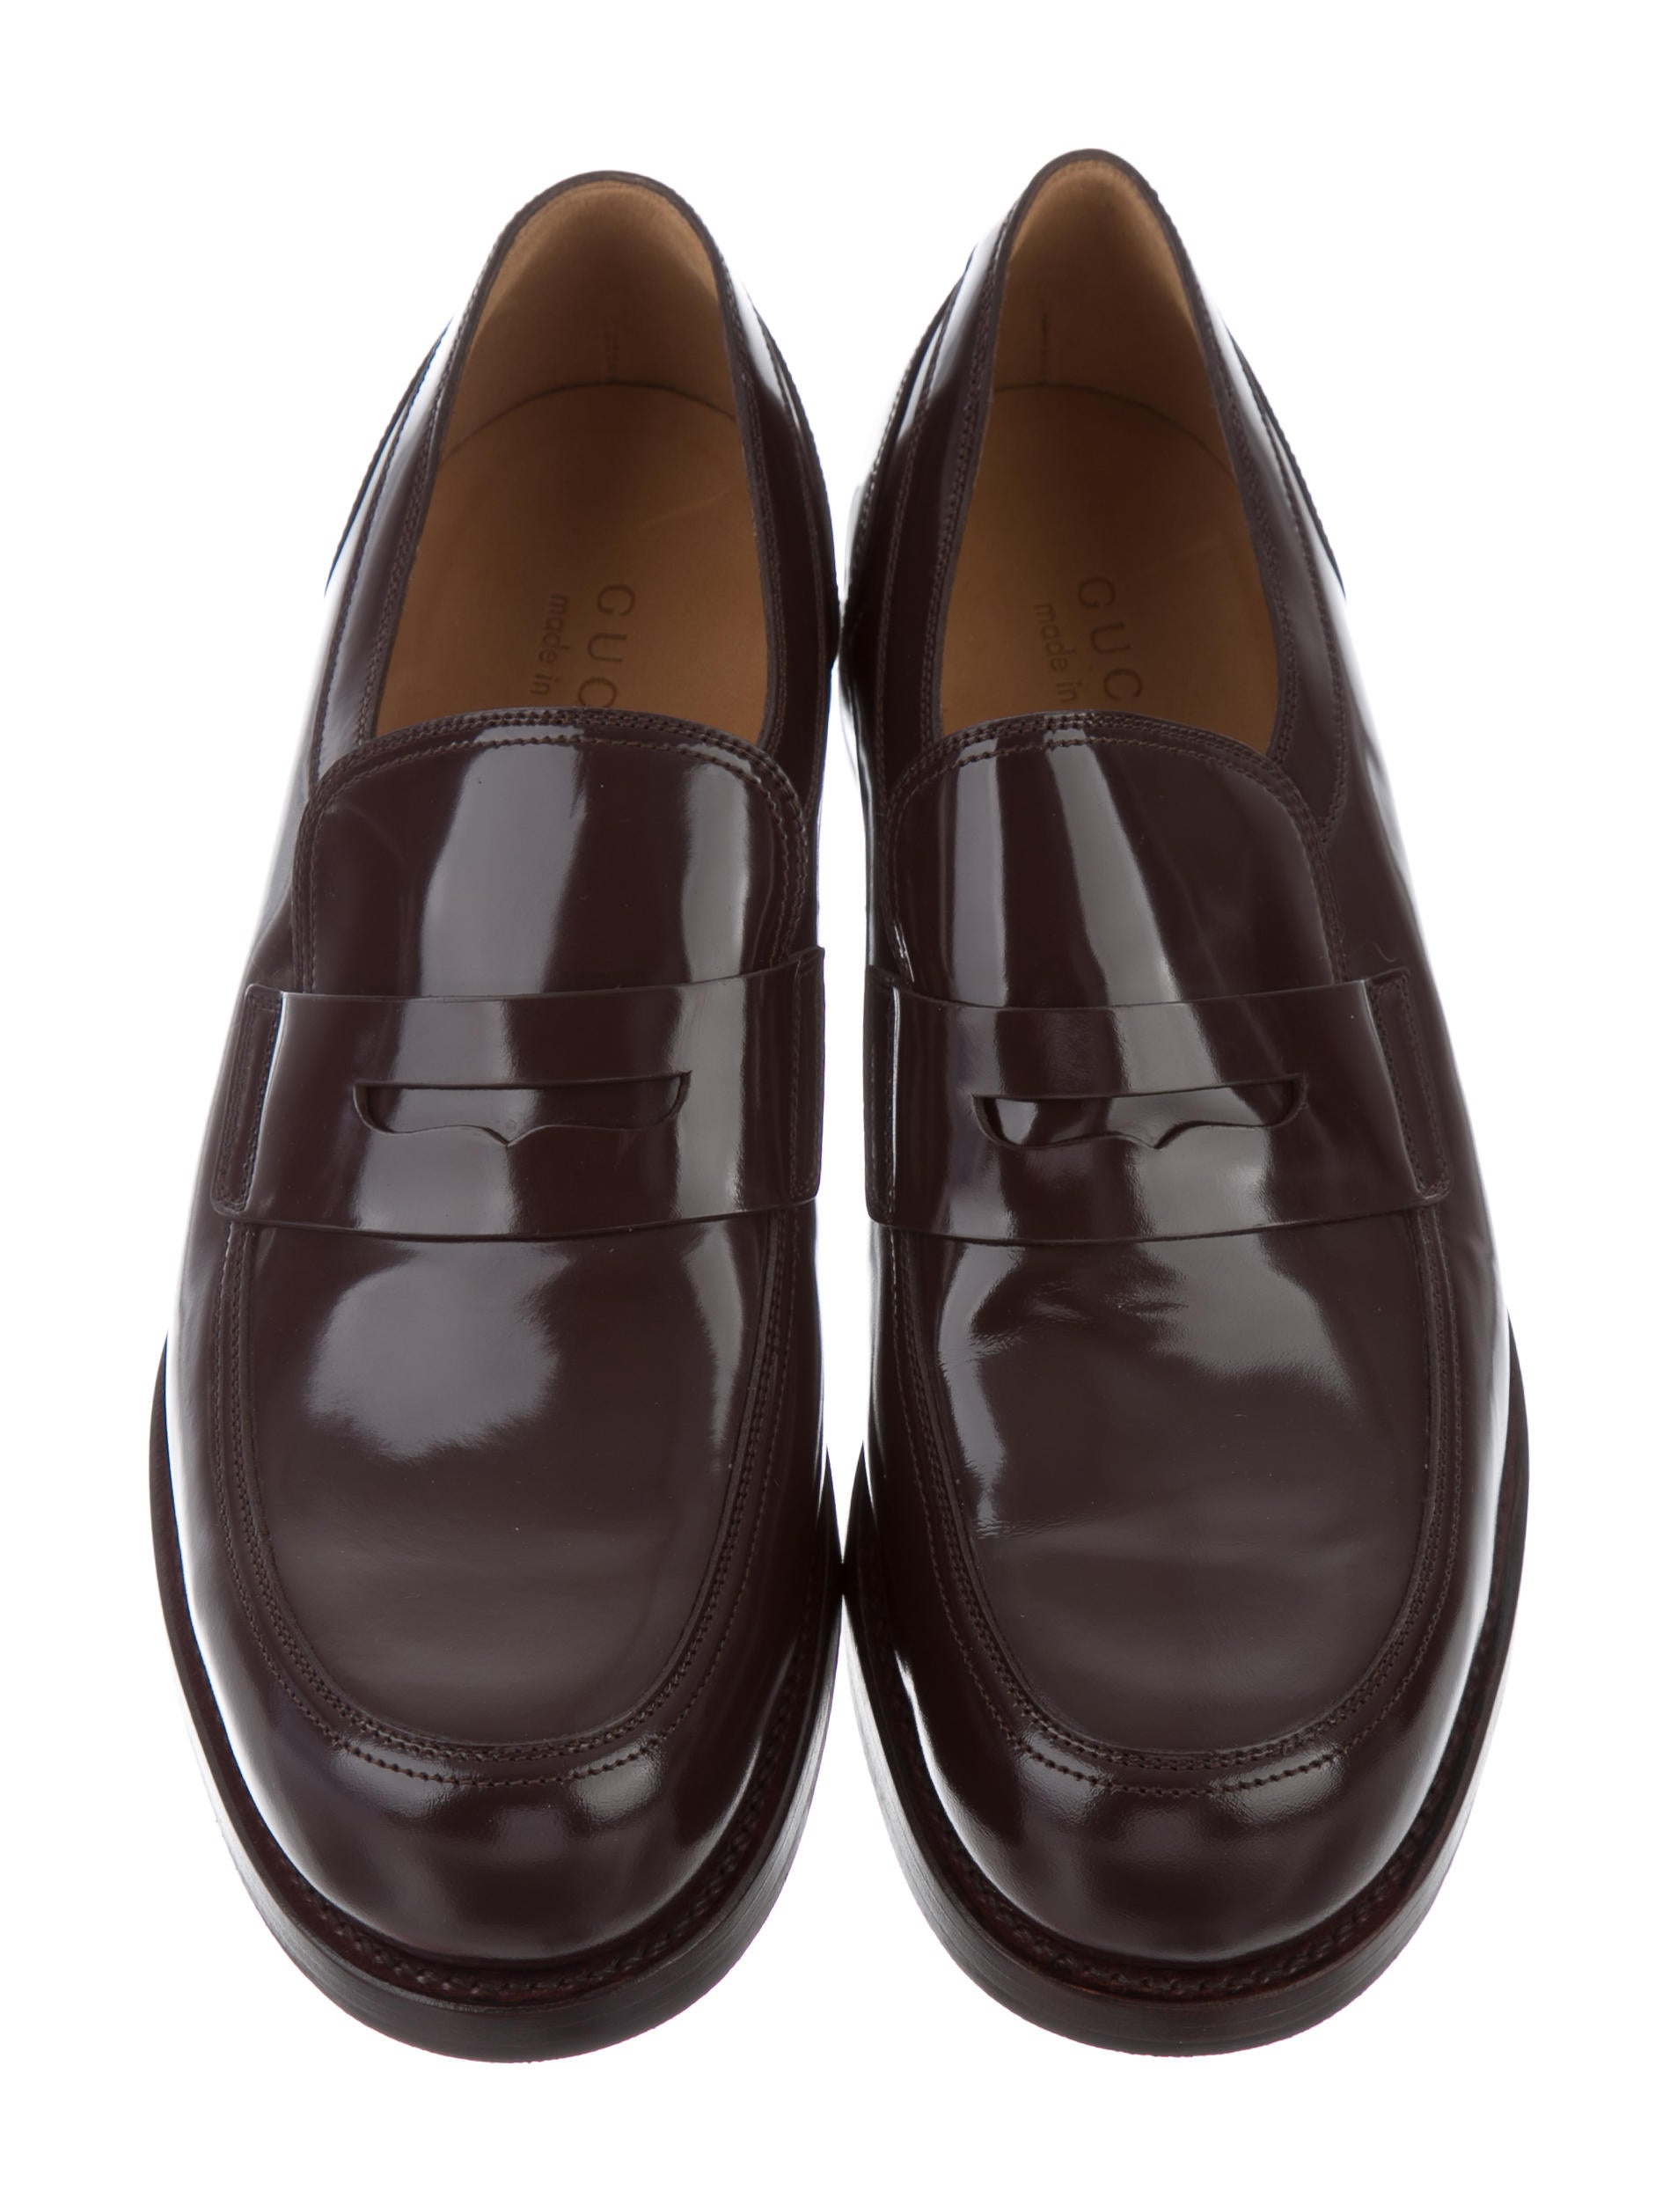 Gucci Patent Leather Penny Loafers - Shoes - GUC136003 ...